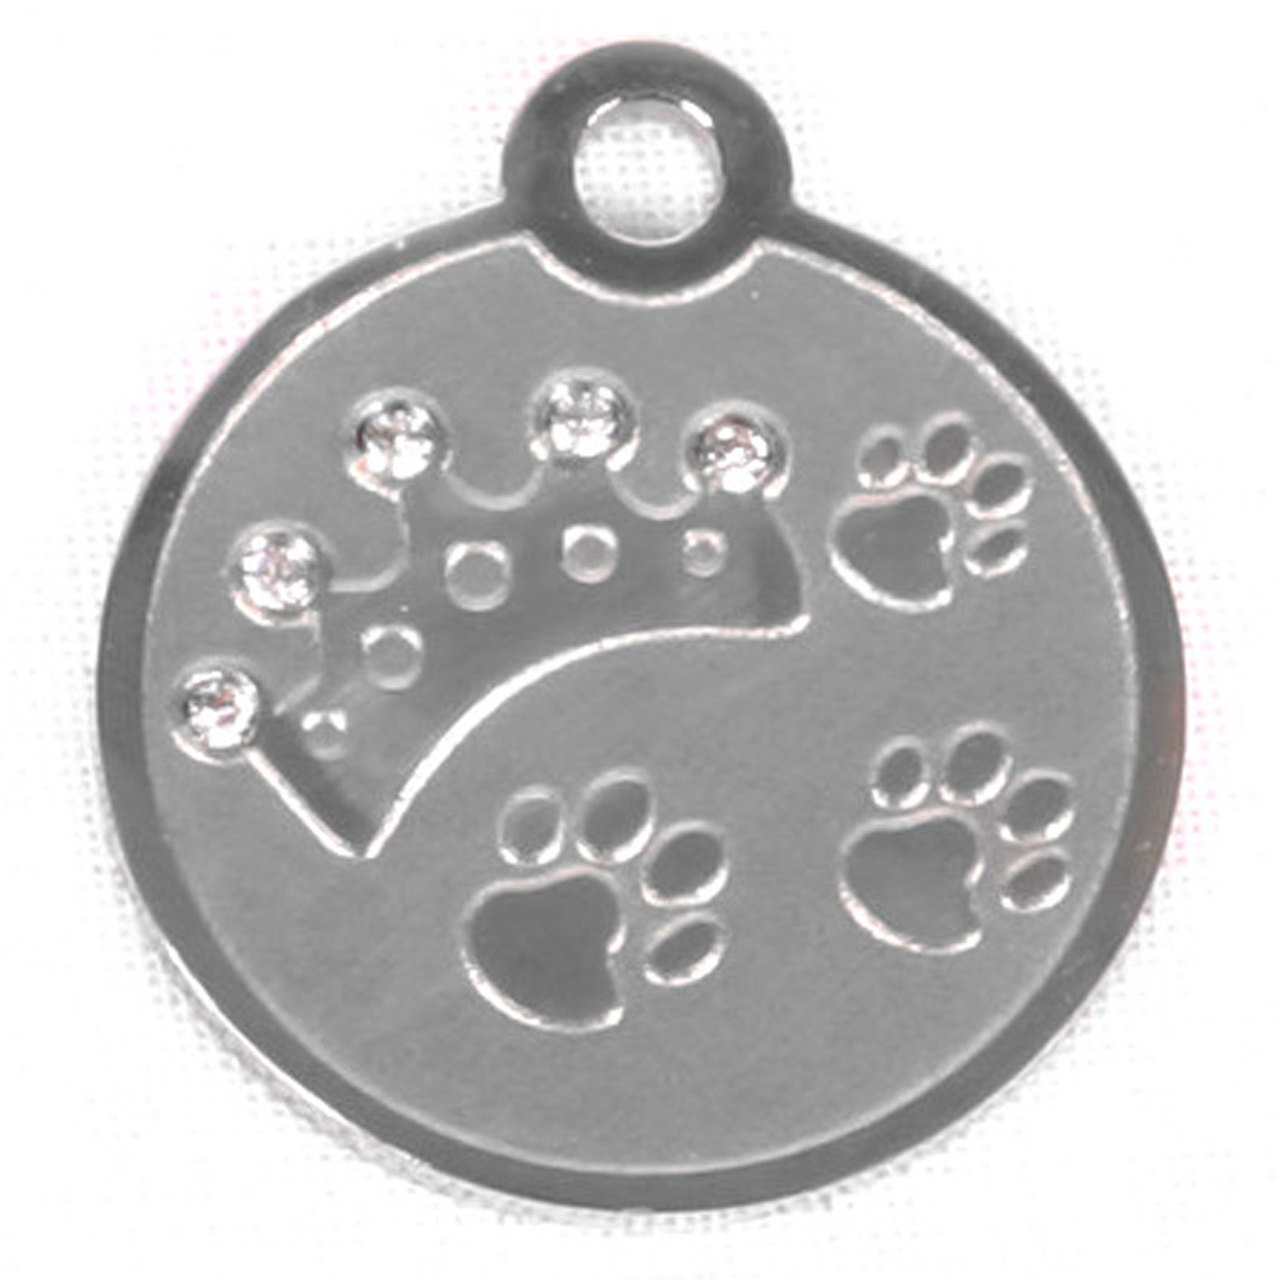 Hot Dog Swarovski Crystal Crown And Paw Stainless Steel P...